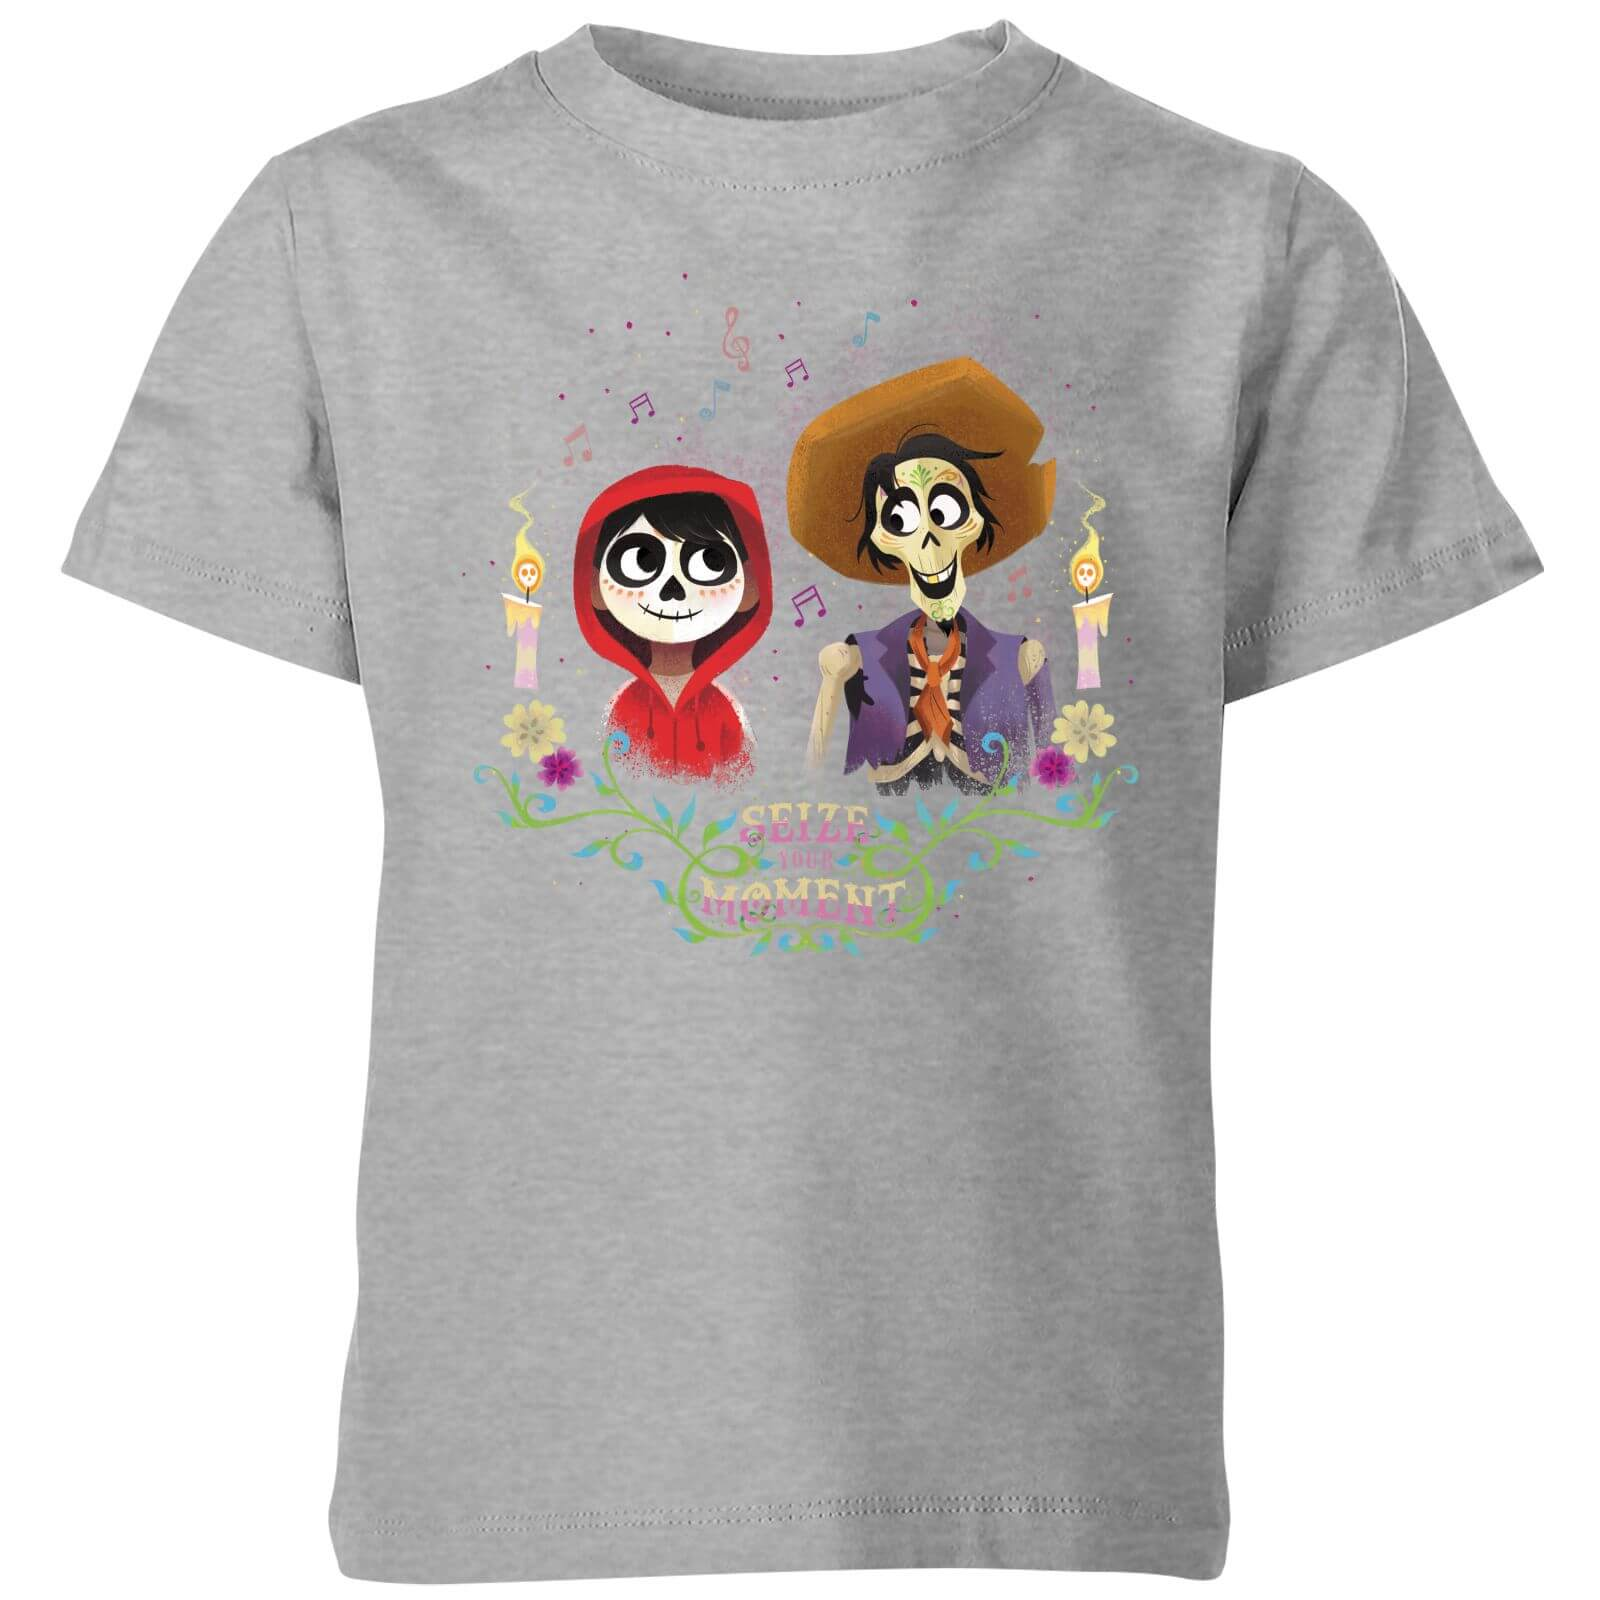 c31d99bdfb6f Coco Miguel And Hector Kids  T-Shirt - Grey Clothing